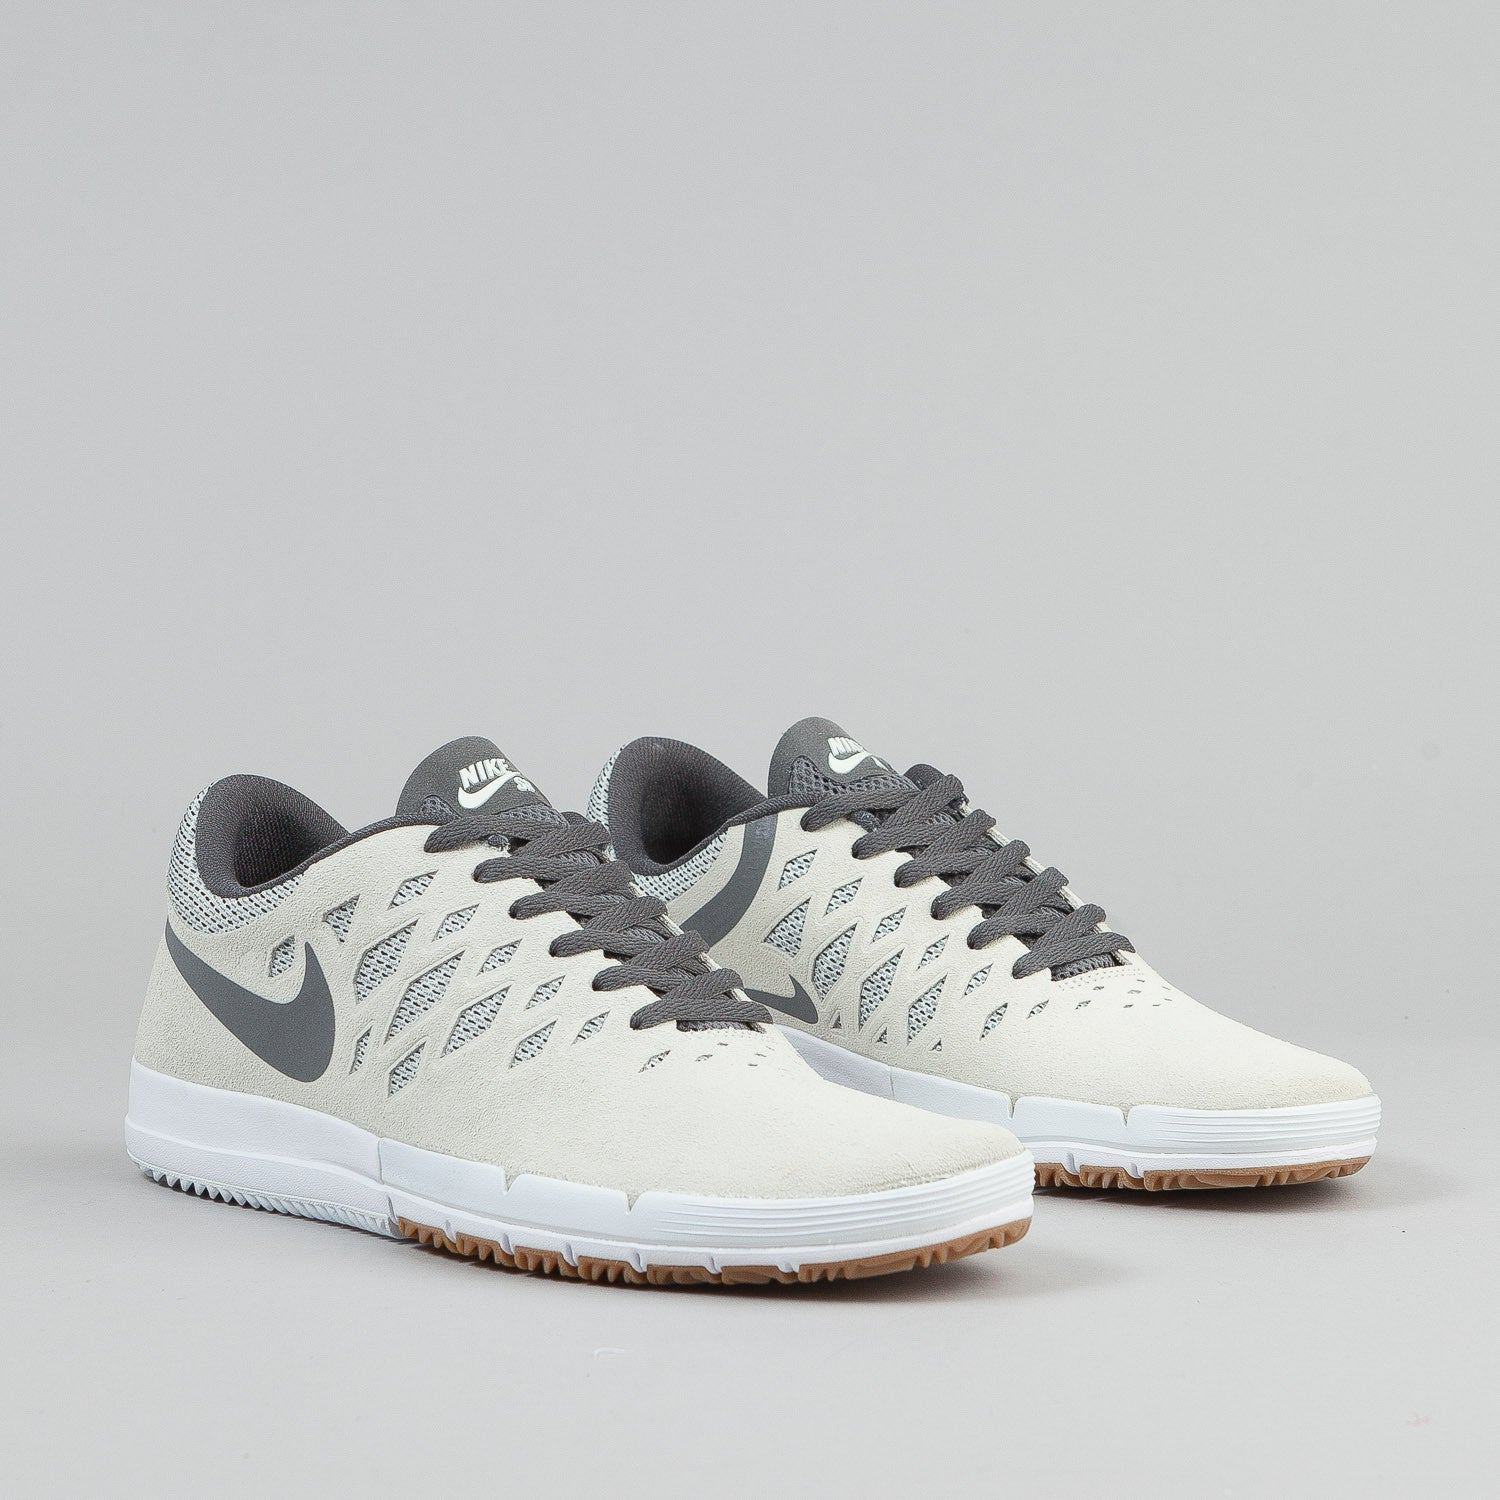 Nike SB Free Shoes - Sail / Cool Grey / White